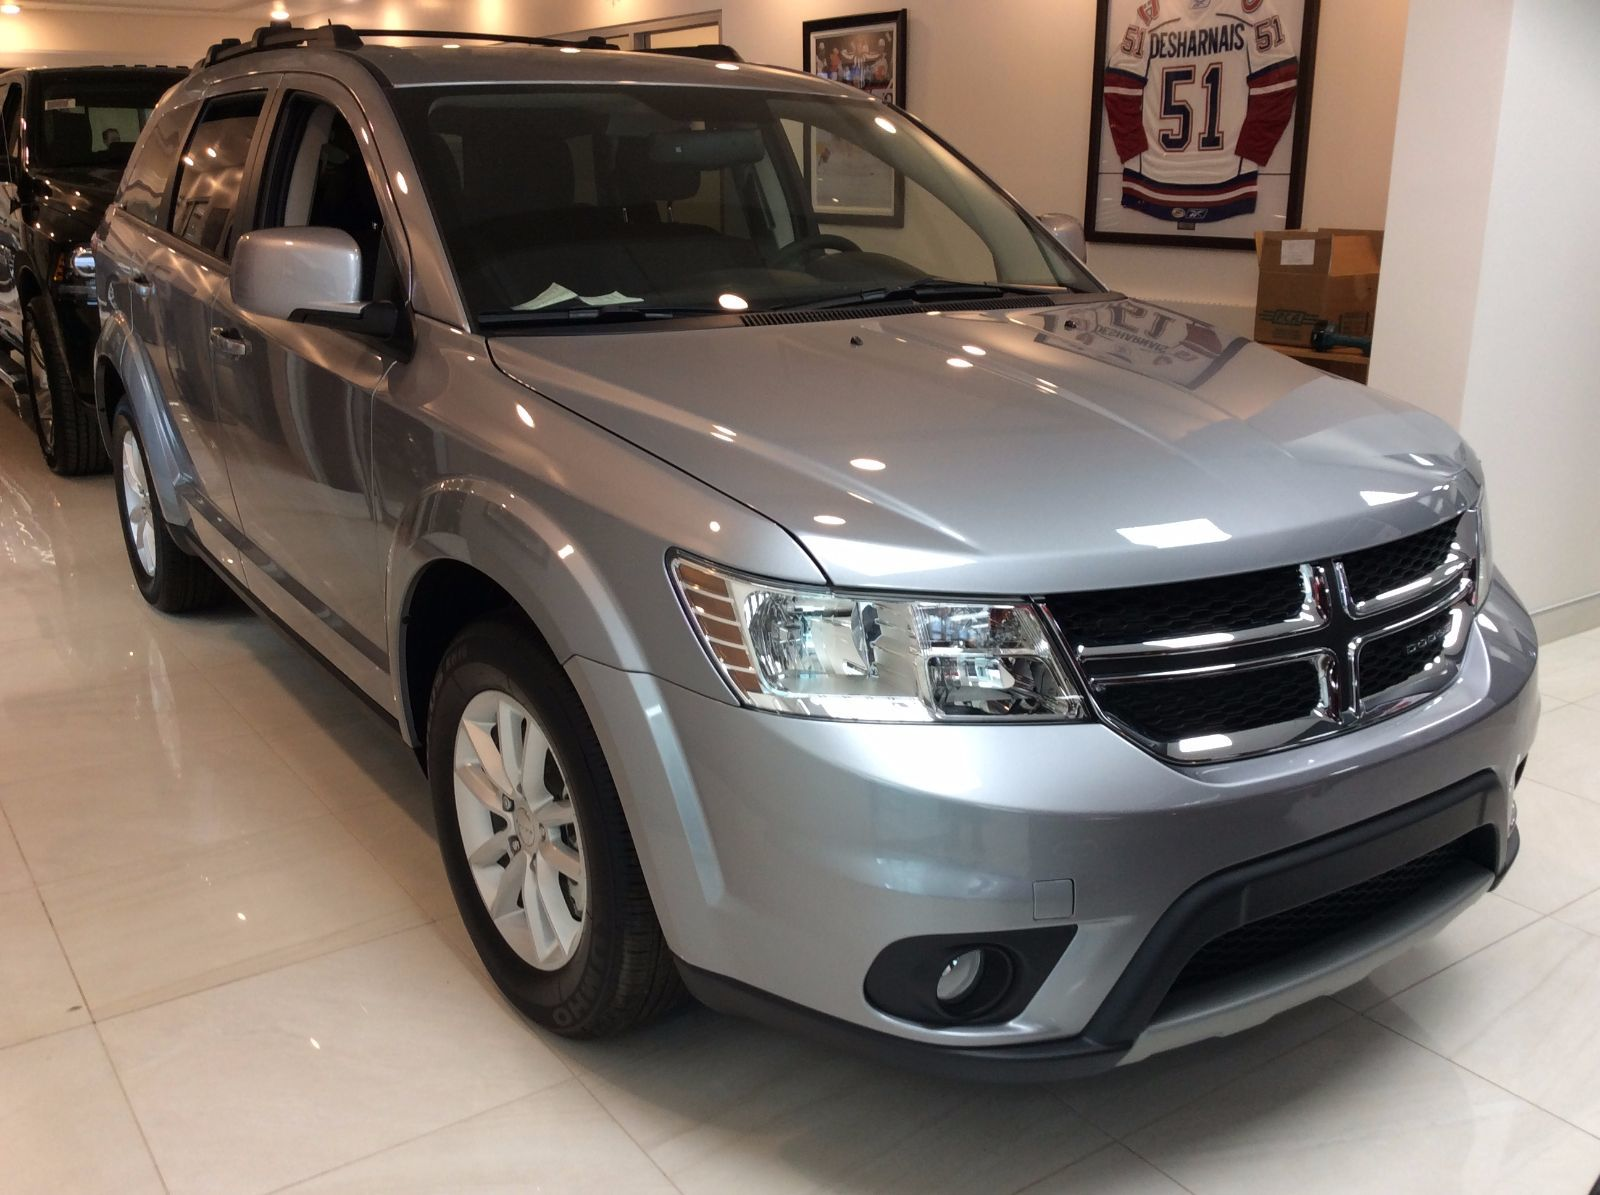 new 2016 dodge journey sxt for sale in laurier station automobile guy beaudoin in laurier. Black Bedroom Furniture Sets. Home Design Ideas